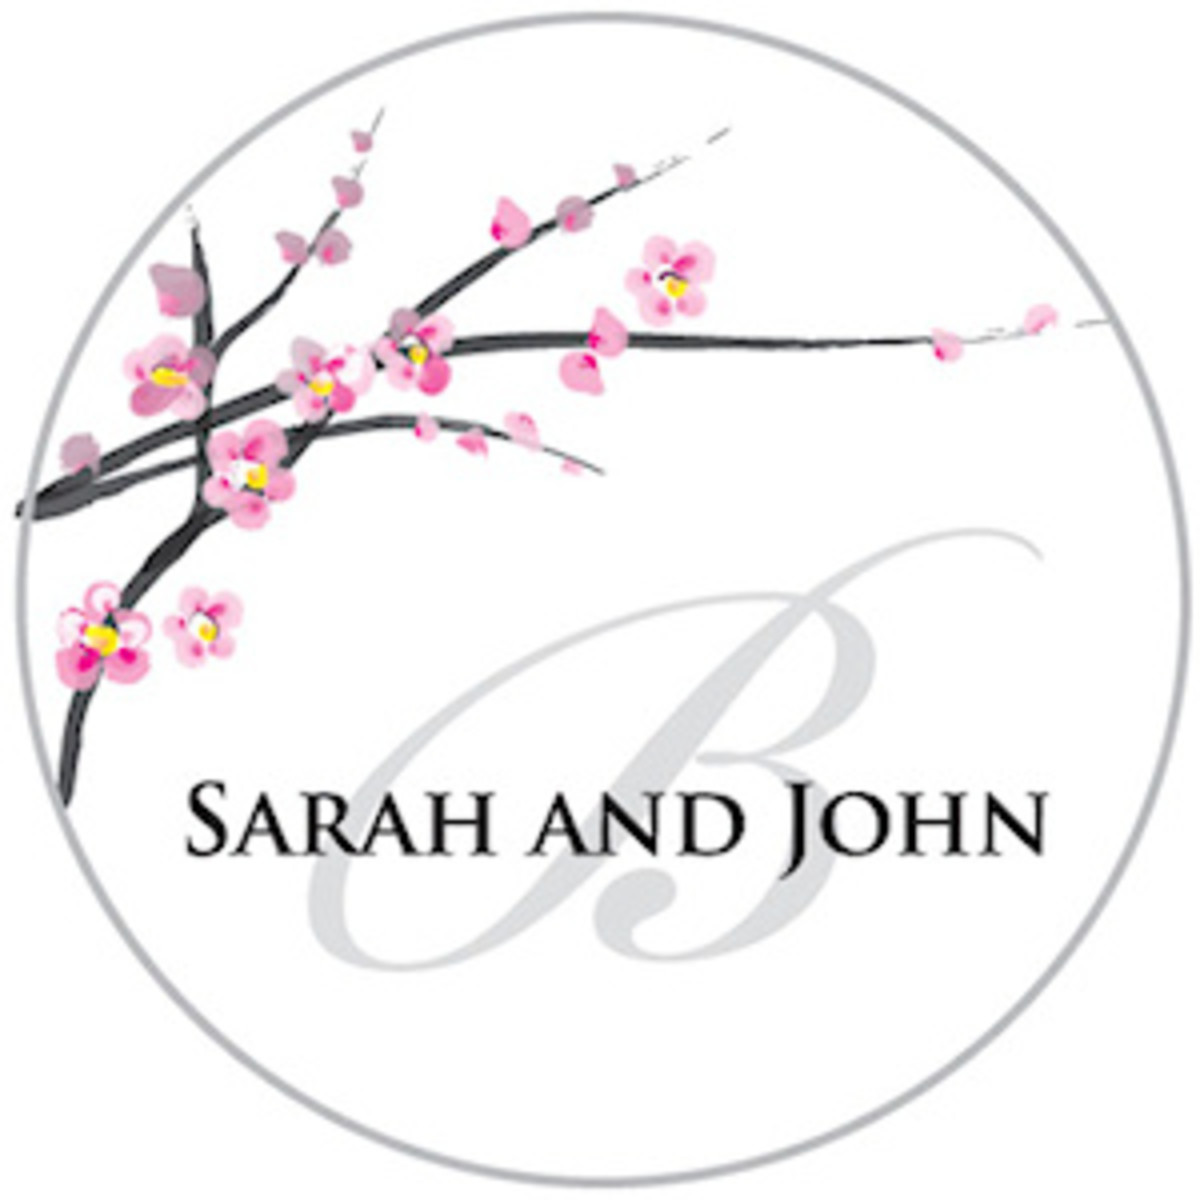 Personalized favor sticker or stationery seal.